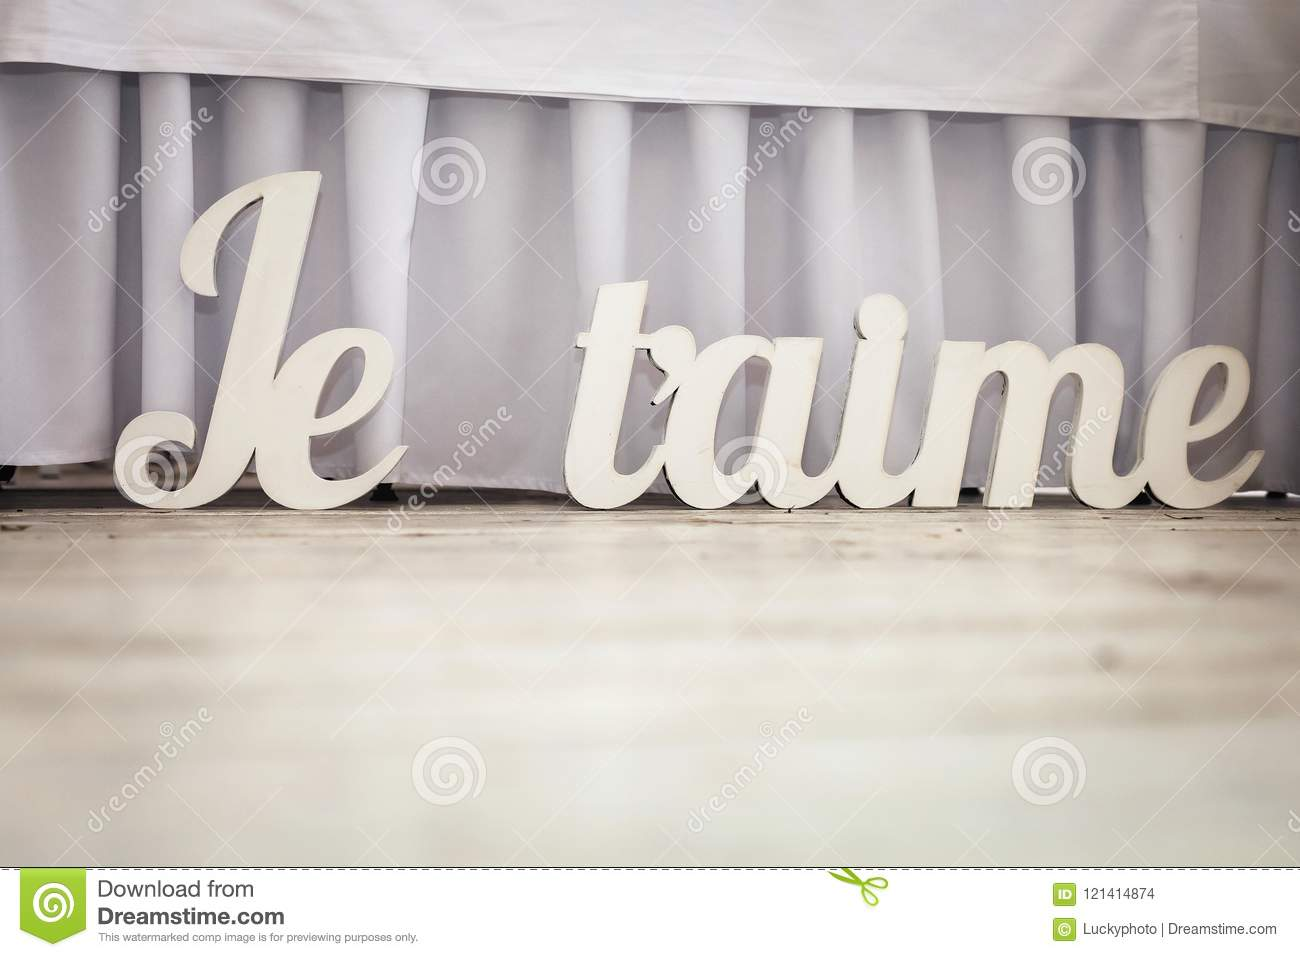 Volumetric White Wedding French Letters Stock Photo - Image of light ...